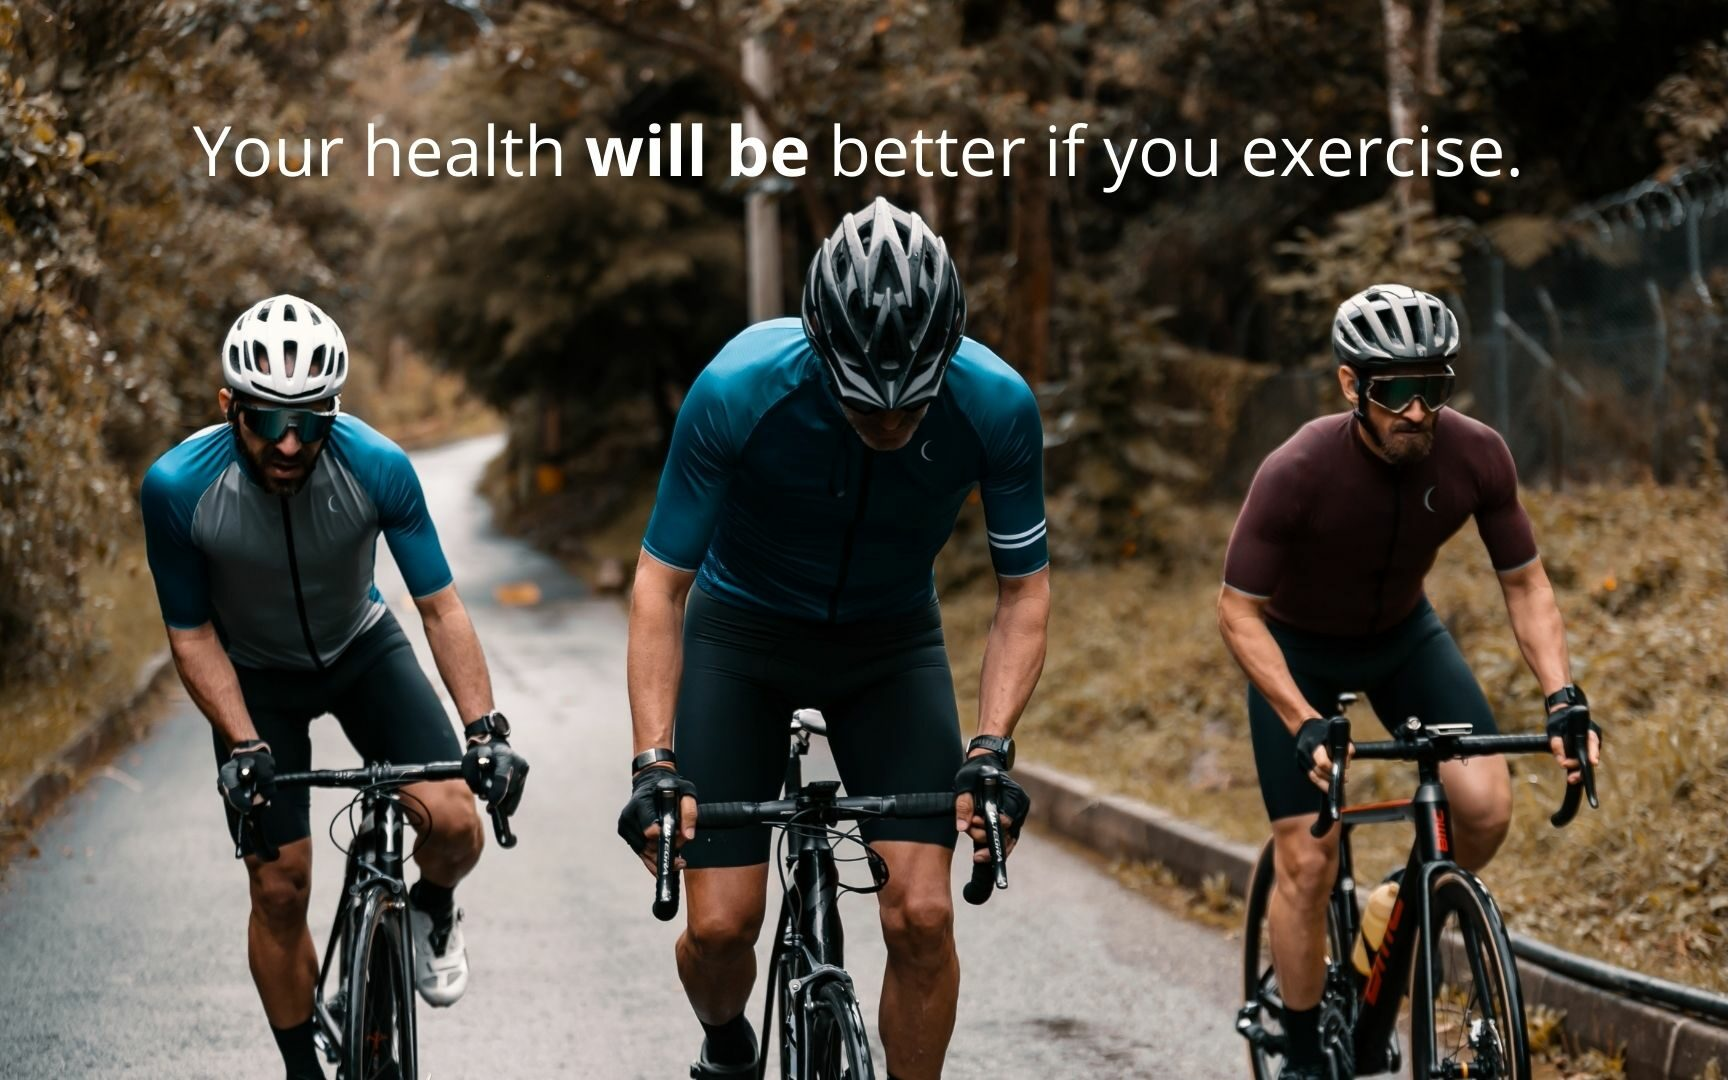 Example of a linking verb: you health WILL BE better if you exercise